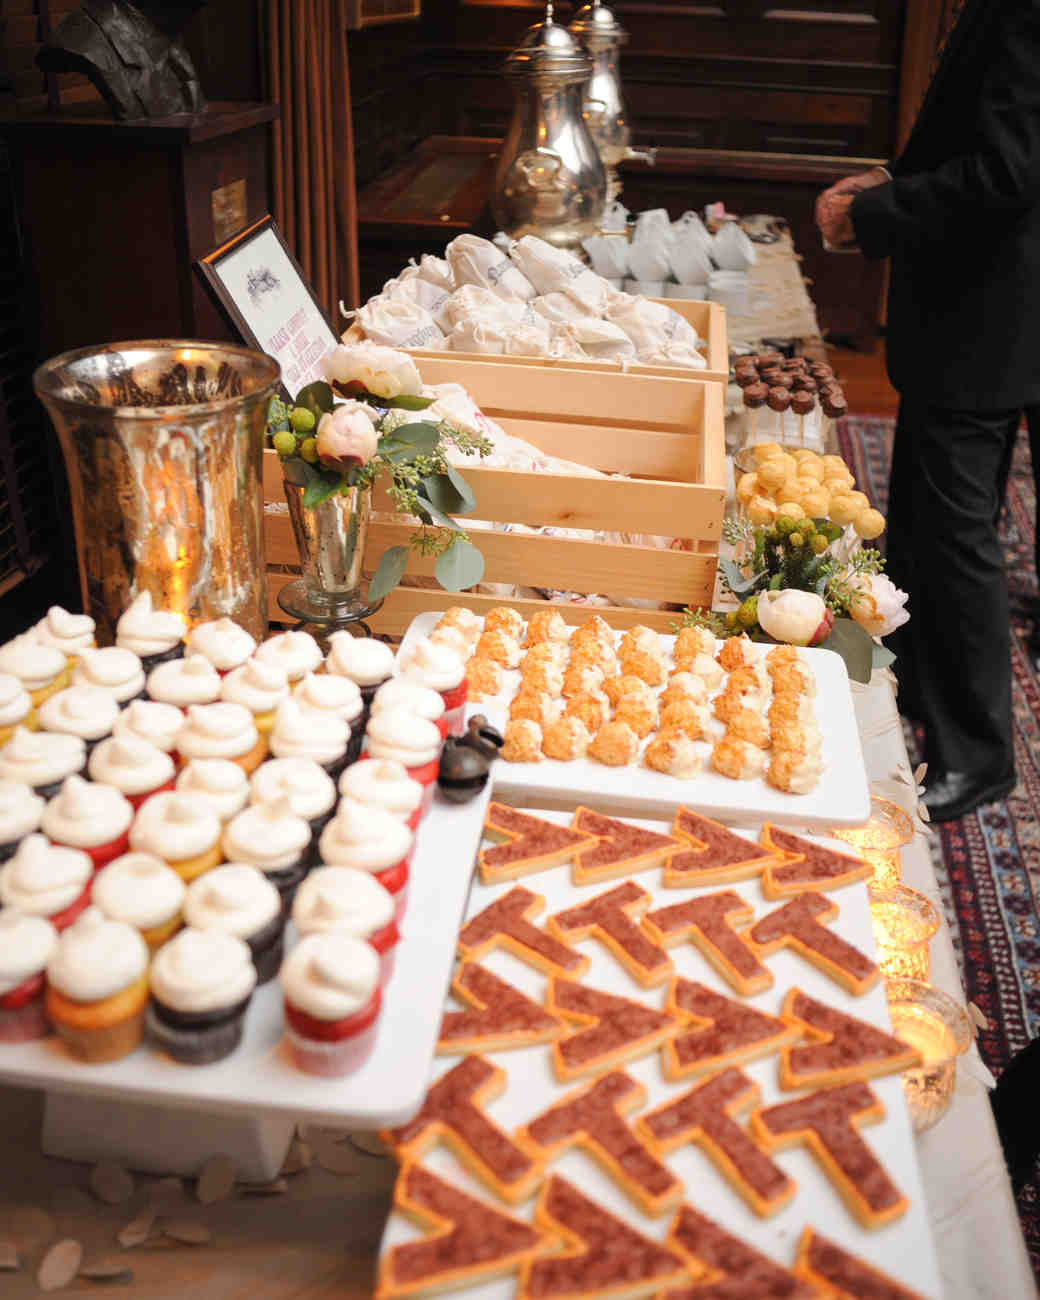 Red Dessert Table For Weddings: Dessert Table Ideas From Real Weddings